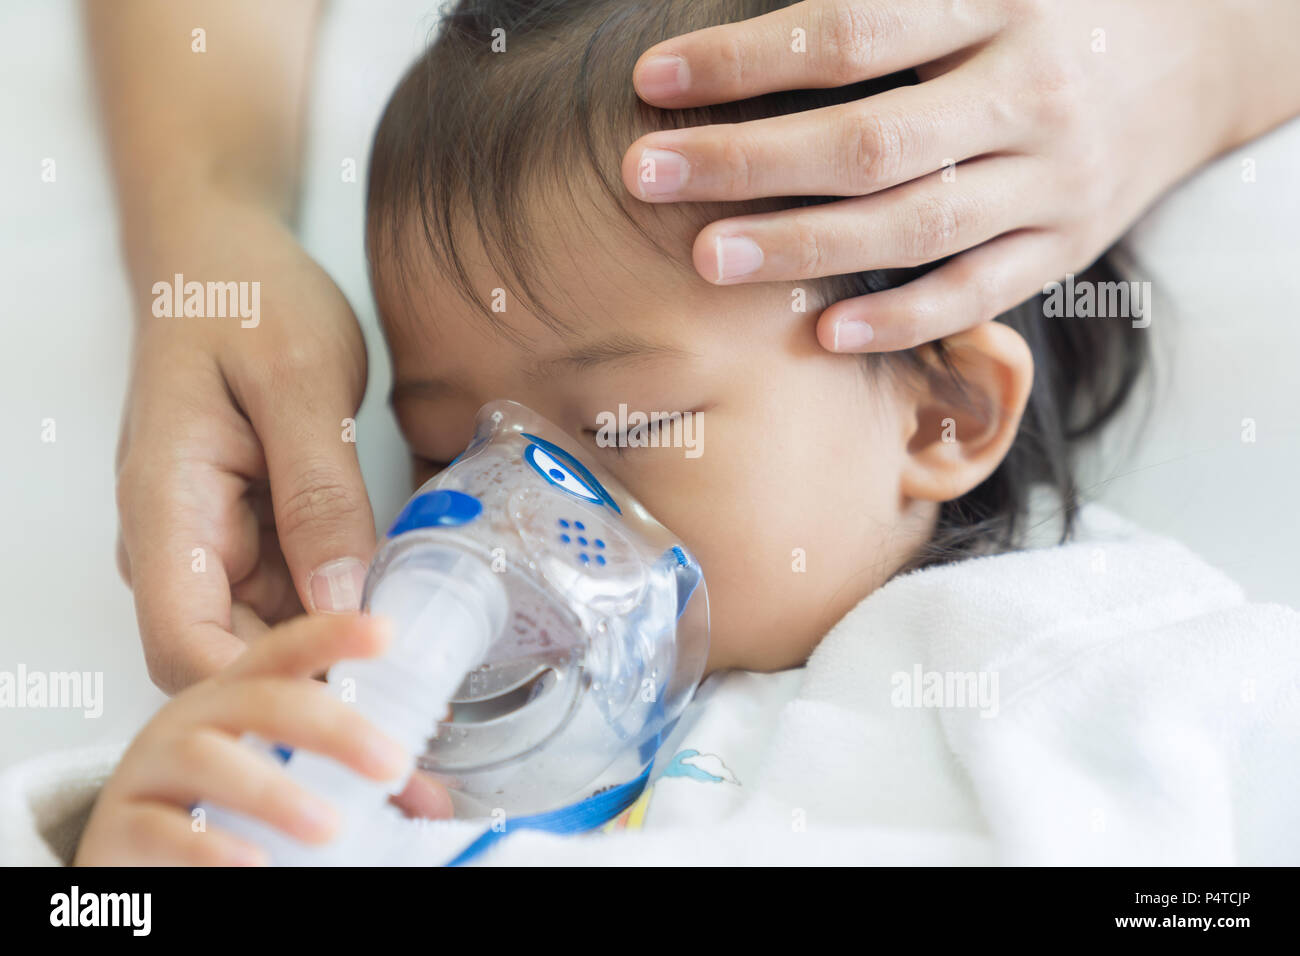 Asian baby girl breathing treatment with mother take care, at room hospital, close up health care kid concept sunny light background. Stock Photo